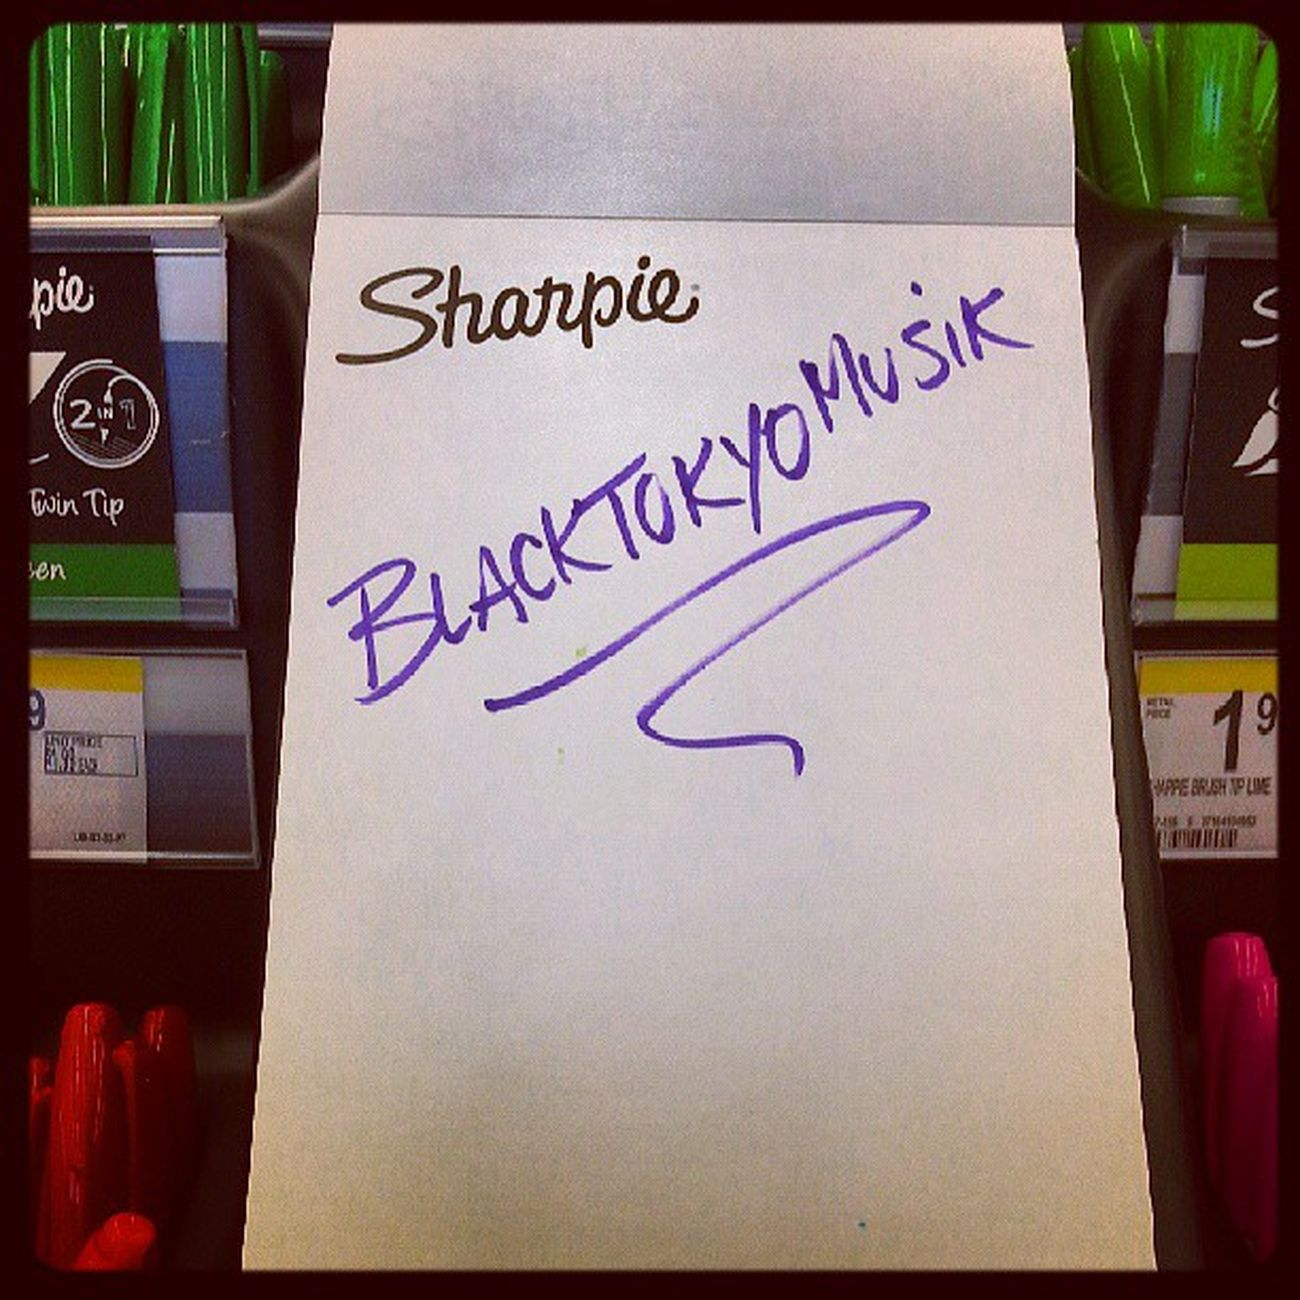 Look what I found at Walgreens today @blacktokyomusik Sharpiemarkers